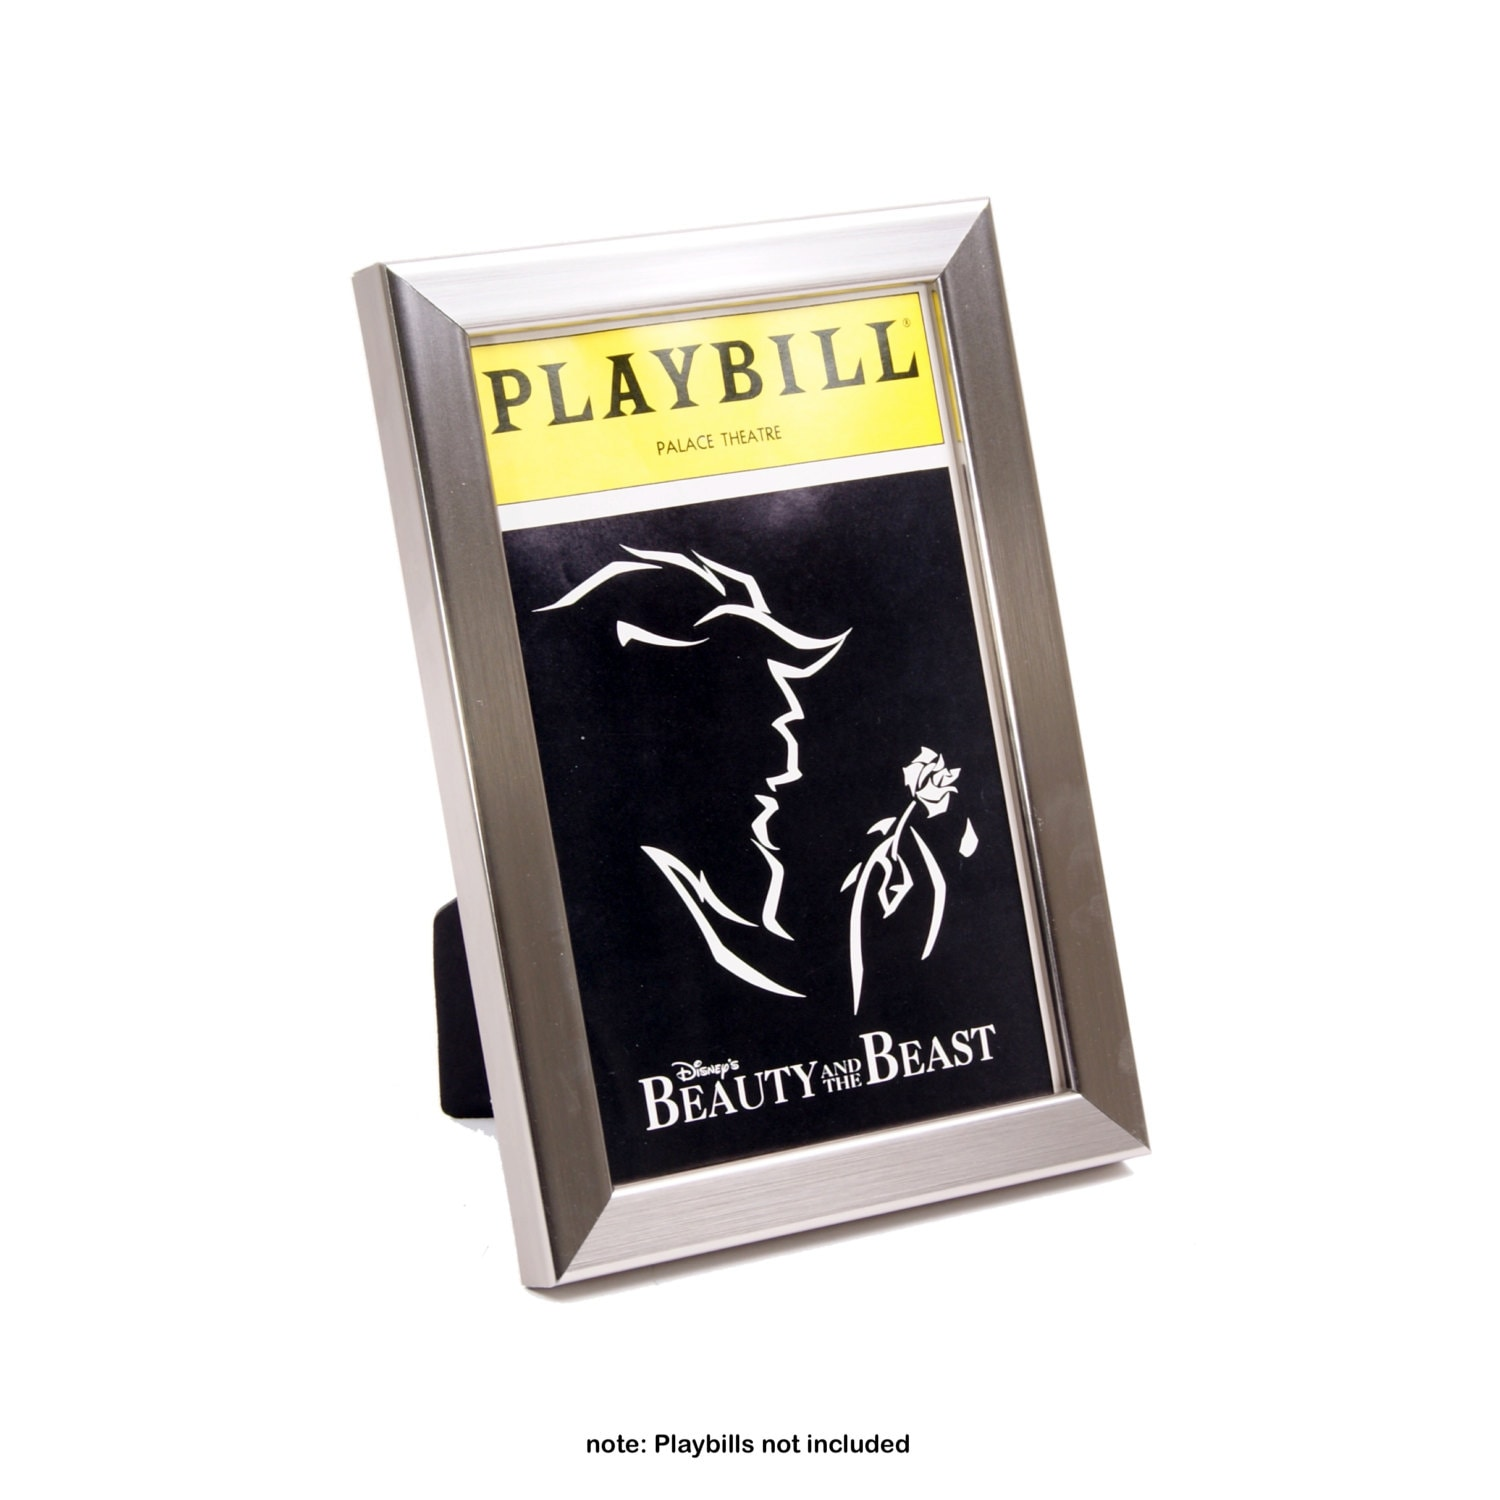 Playbill Frame - 5.5x8.5-inch Frame Hold\'s Playbill Theatre Magazine ...